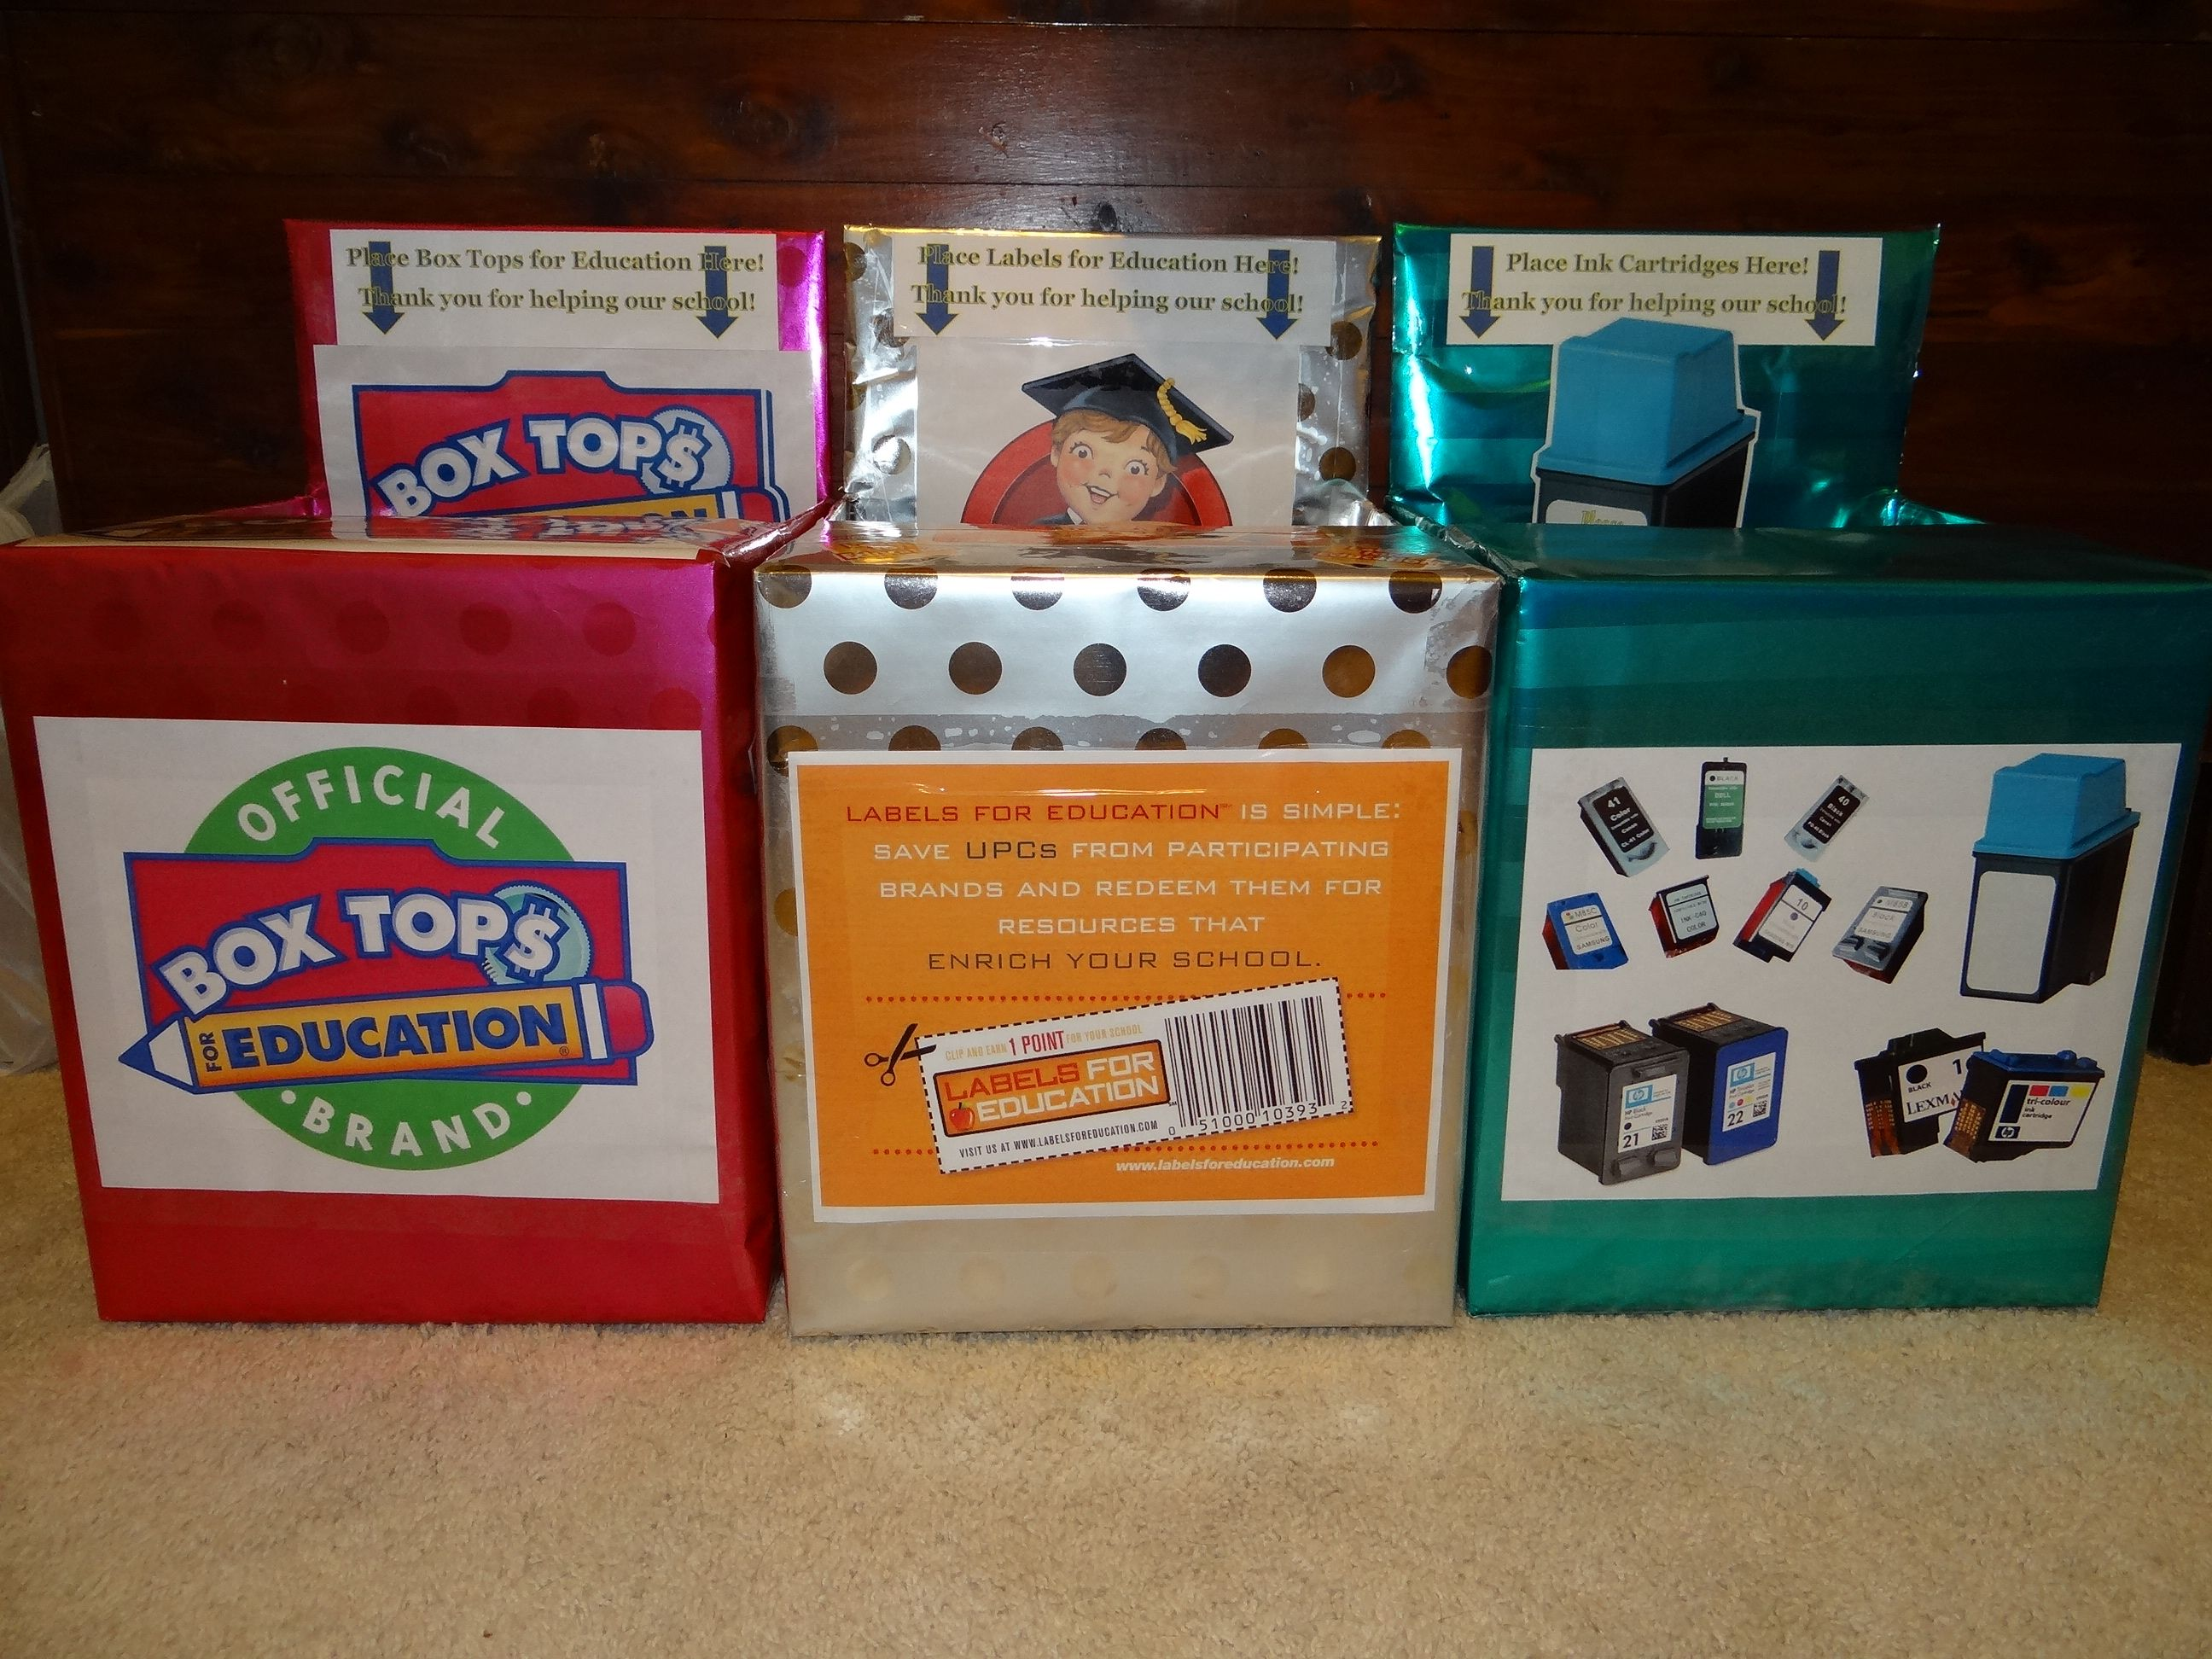 Our New Principal Asked For Some New Collection Boxes For Box Tops Labels For Education And Ink